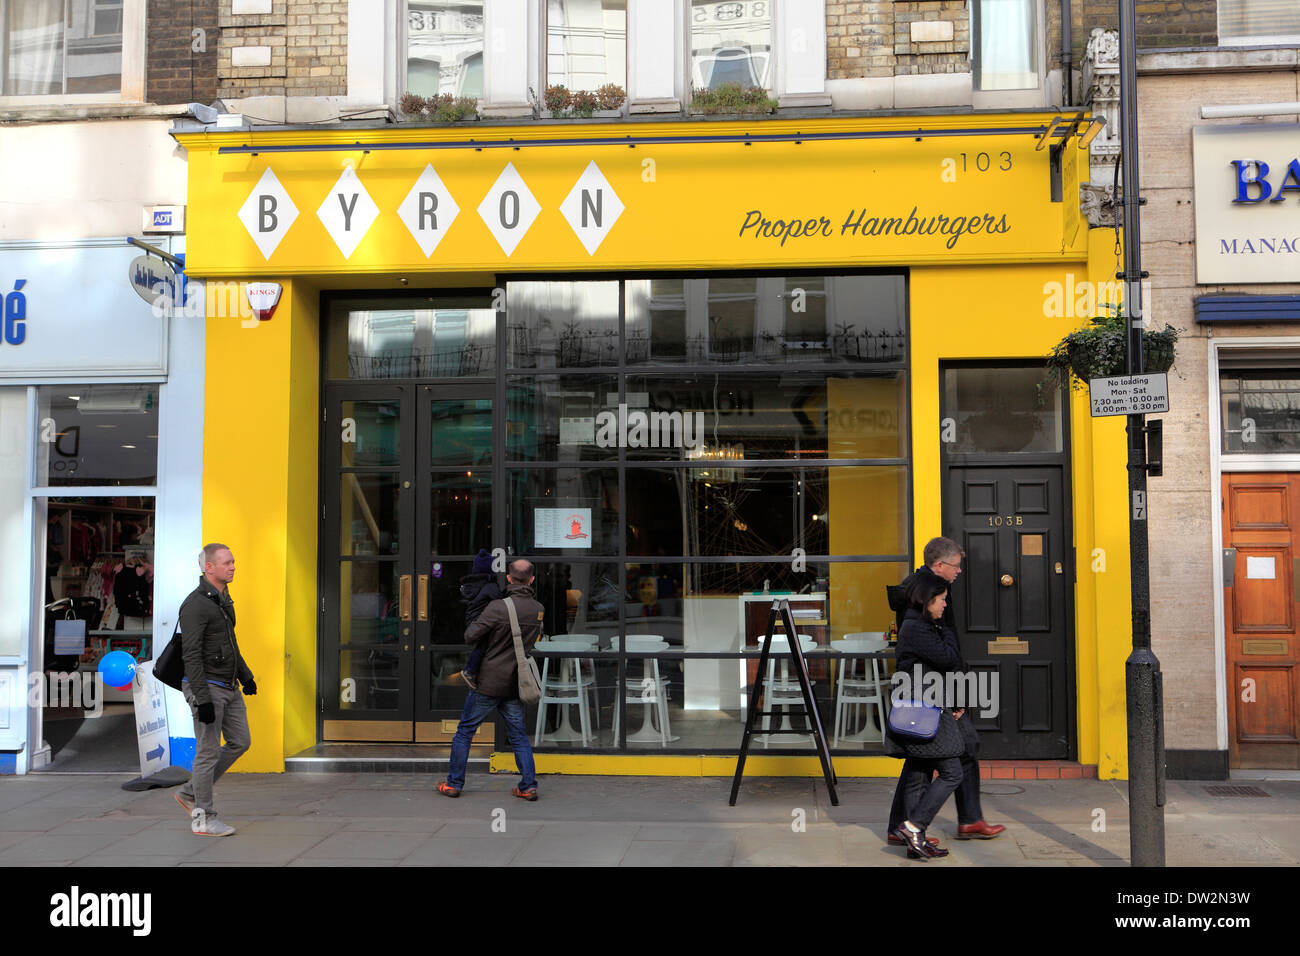 united kingdom london royal borough of kensington and chelsea 103 westbourne grove byron proper hamburgers shop Stock Photo